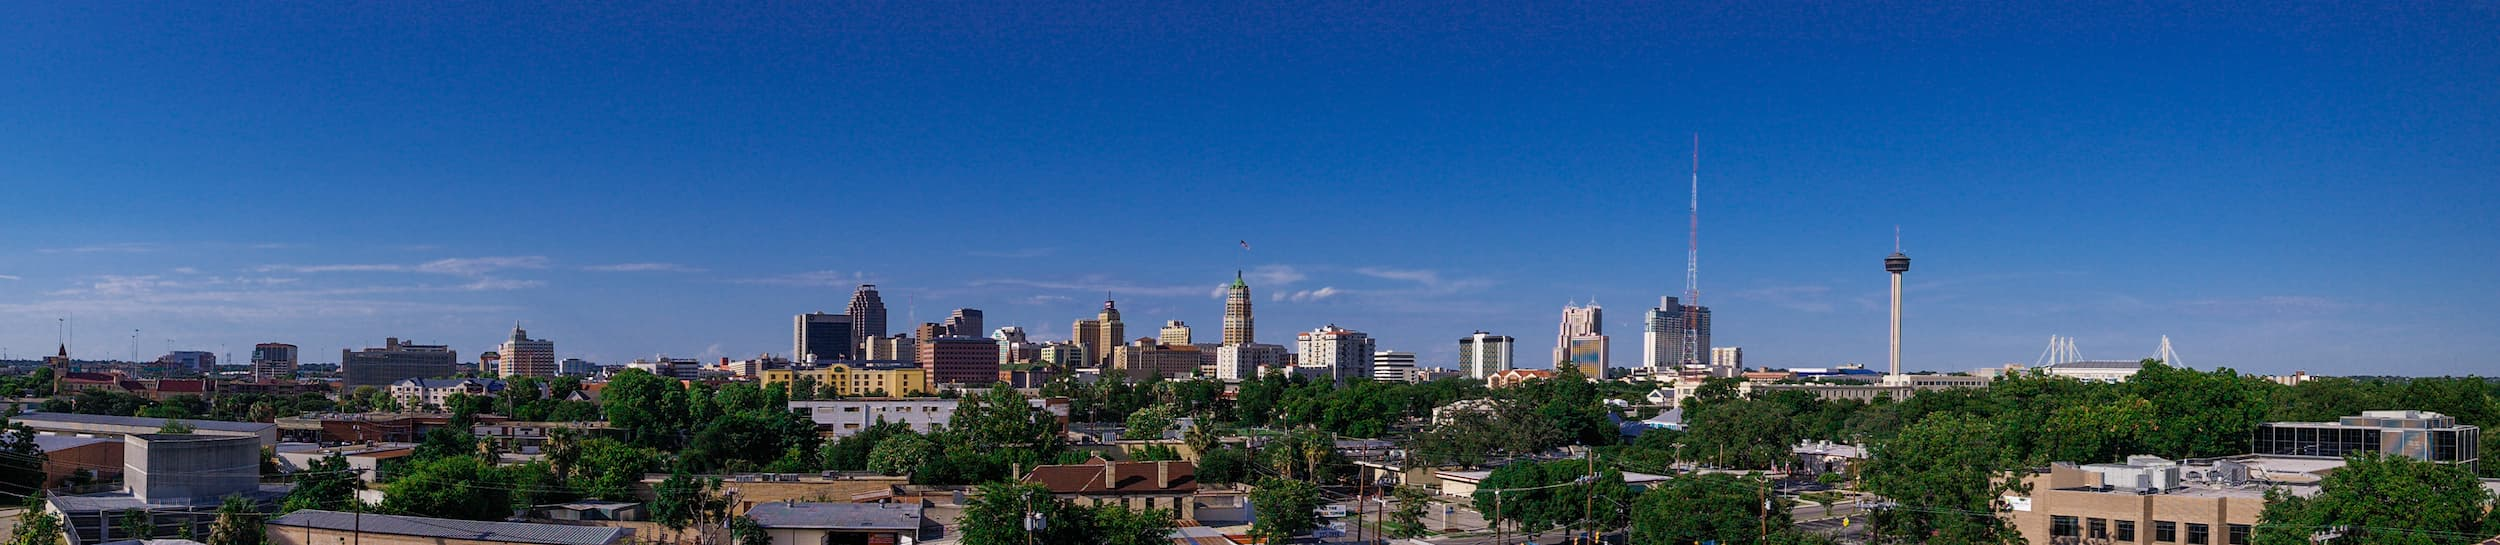 Pictured: skyline of San Antonio